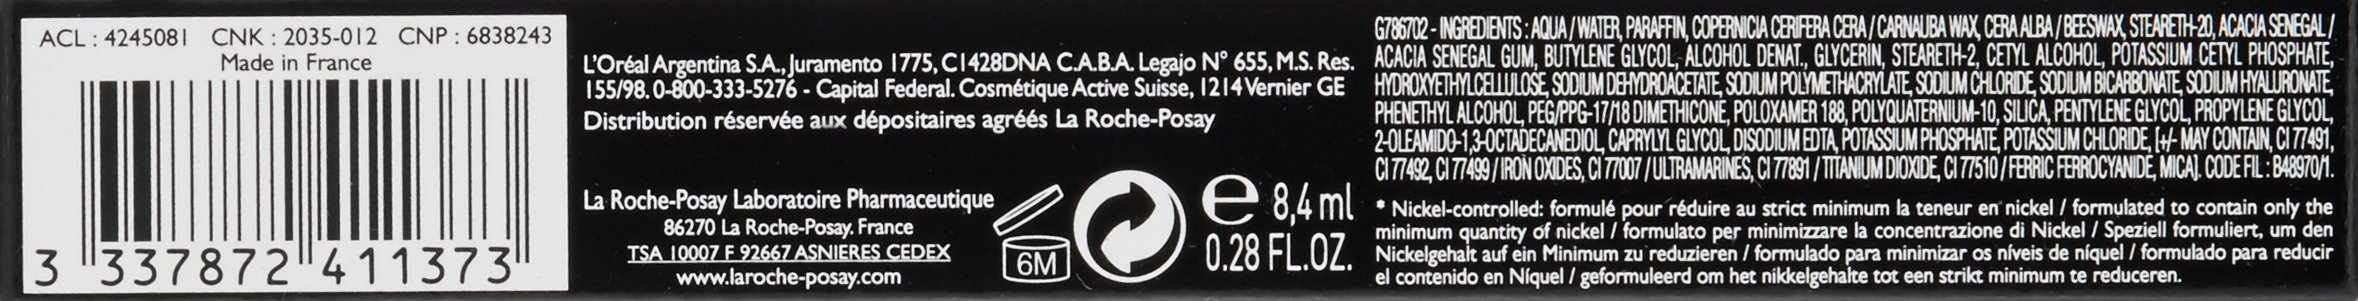 La Roche-Posay Respectissime Extension Lengthening Mascara, 1 Count by La Roche-Posay (Image #7)